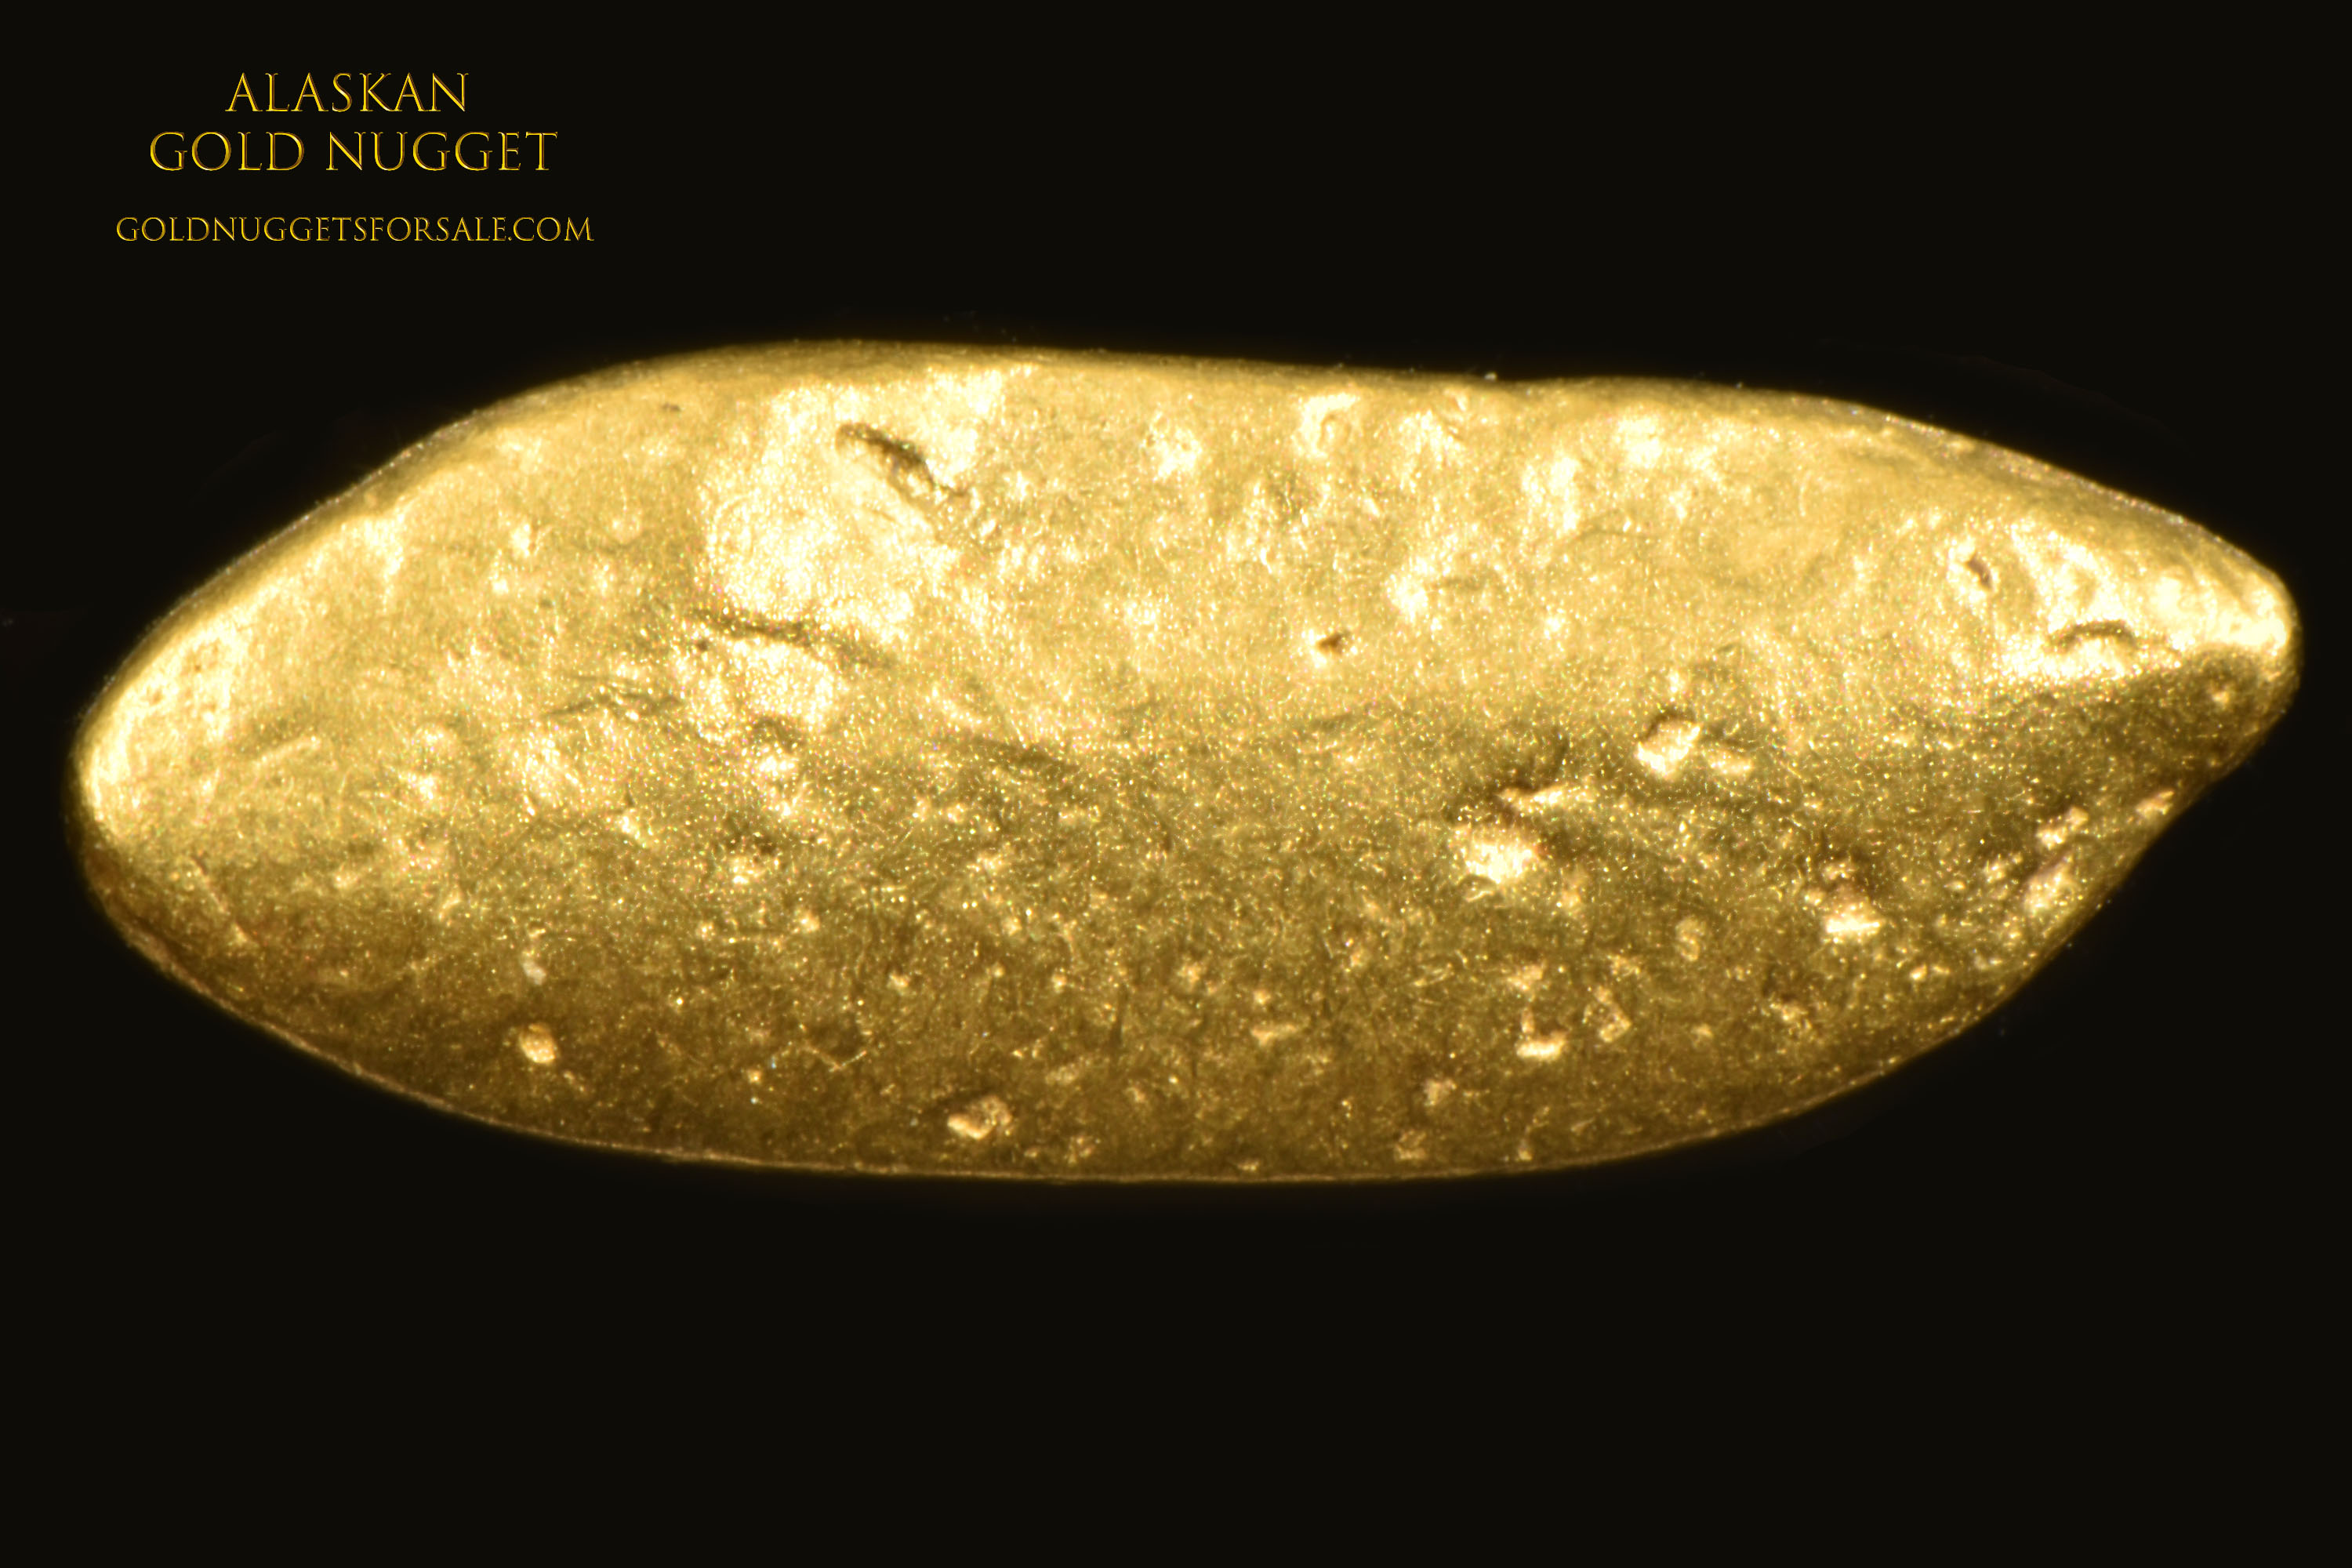 Jewelry Grade Gold Nugget From Alaska - Intricate Shape